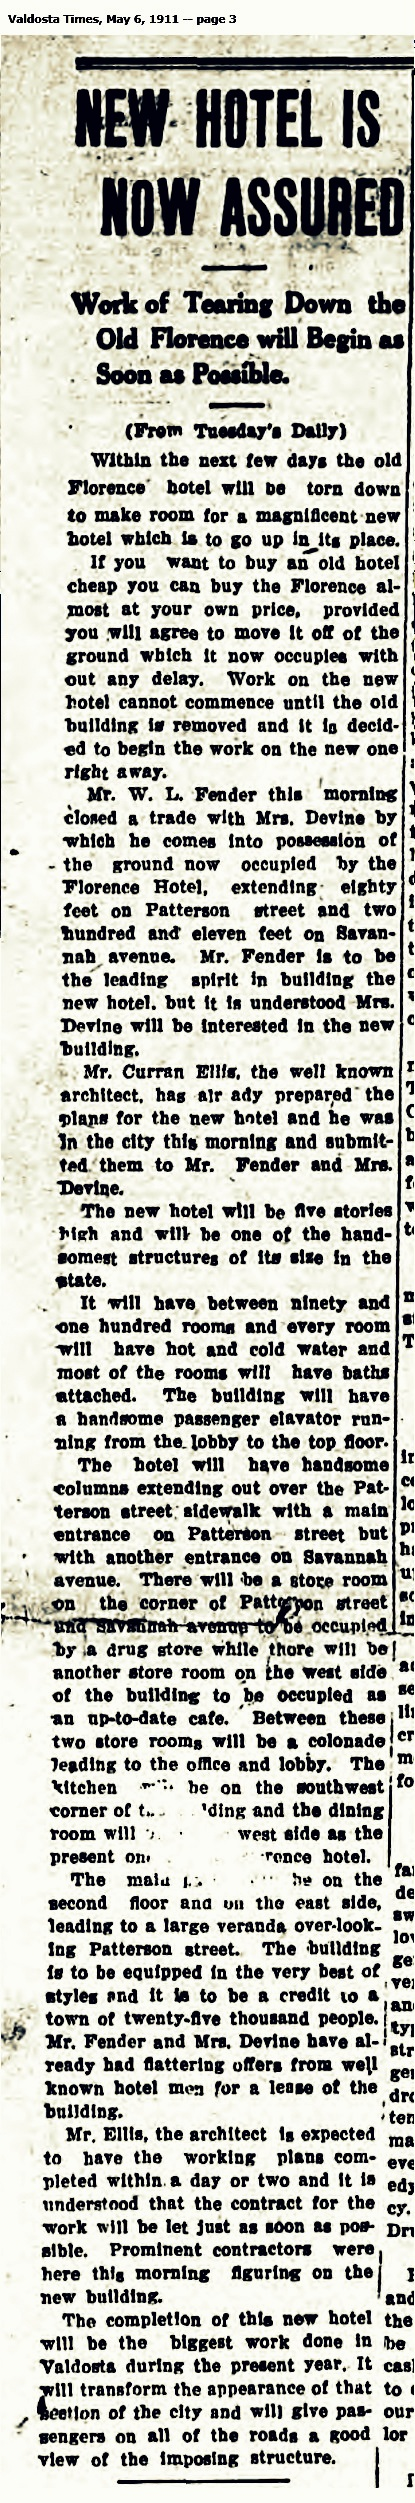 In 1911, The Valdosta Times reported that Lon Fender would build the Hotel Patterson.